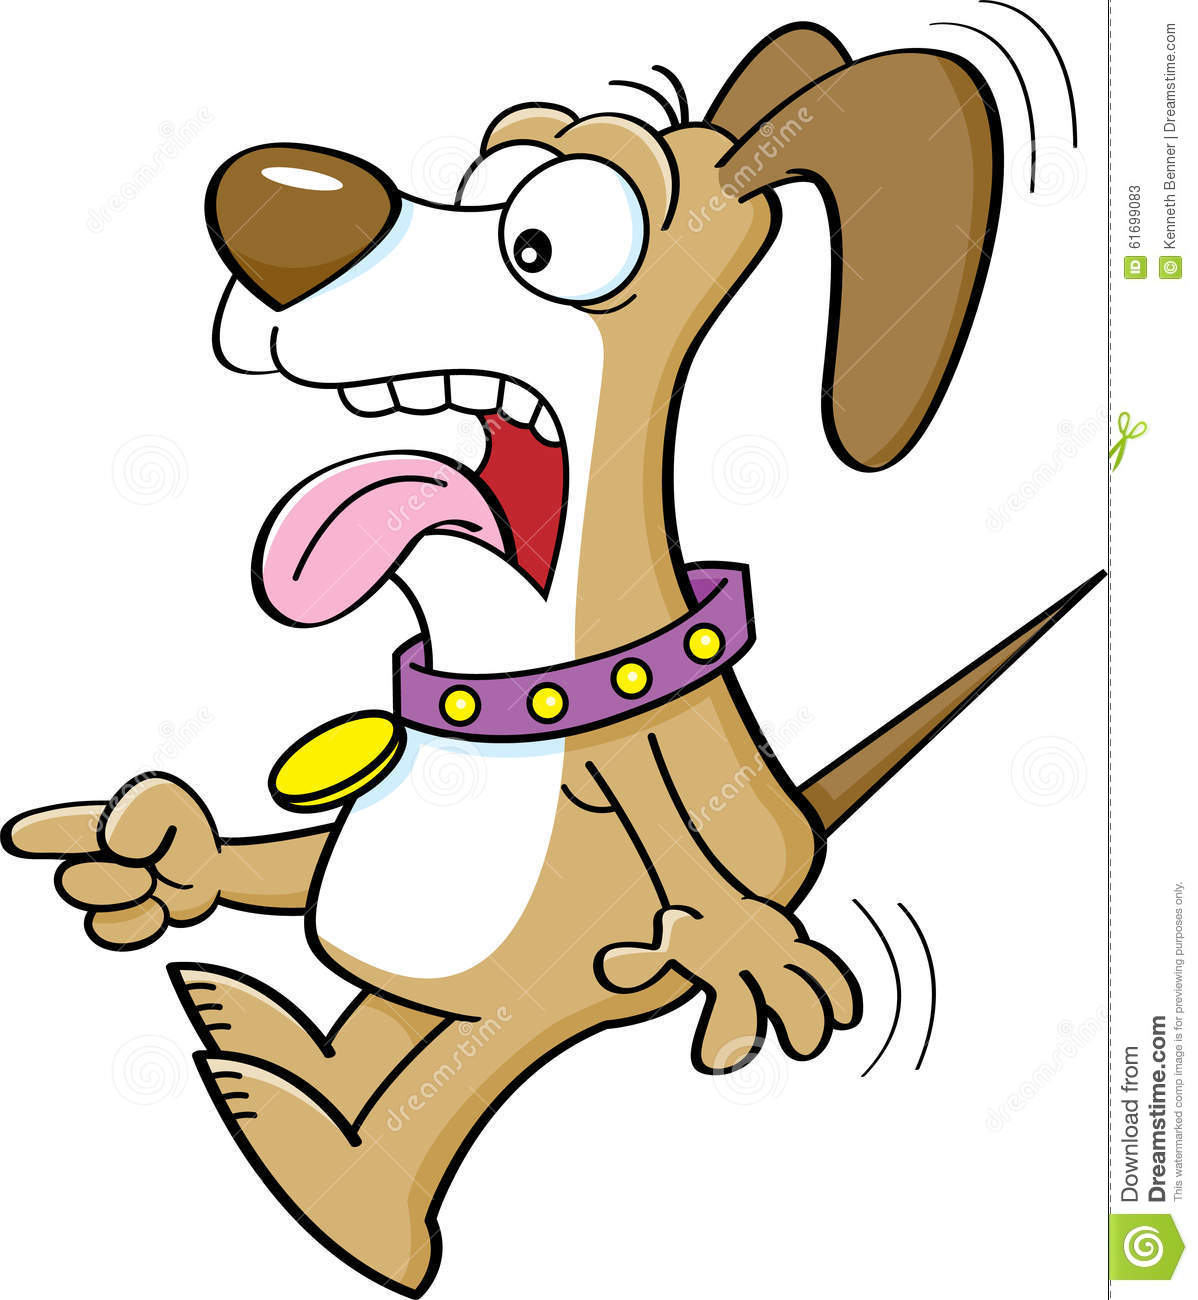 Cartoon Scared Dog Pointing. Stock Vector - Image: 61699083